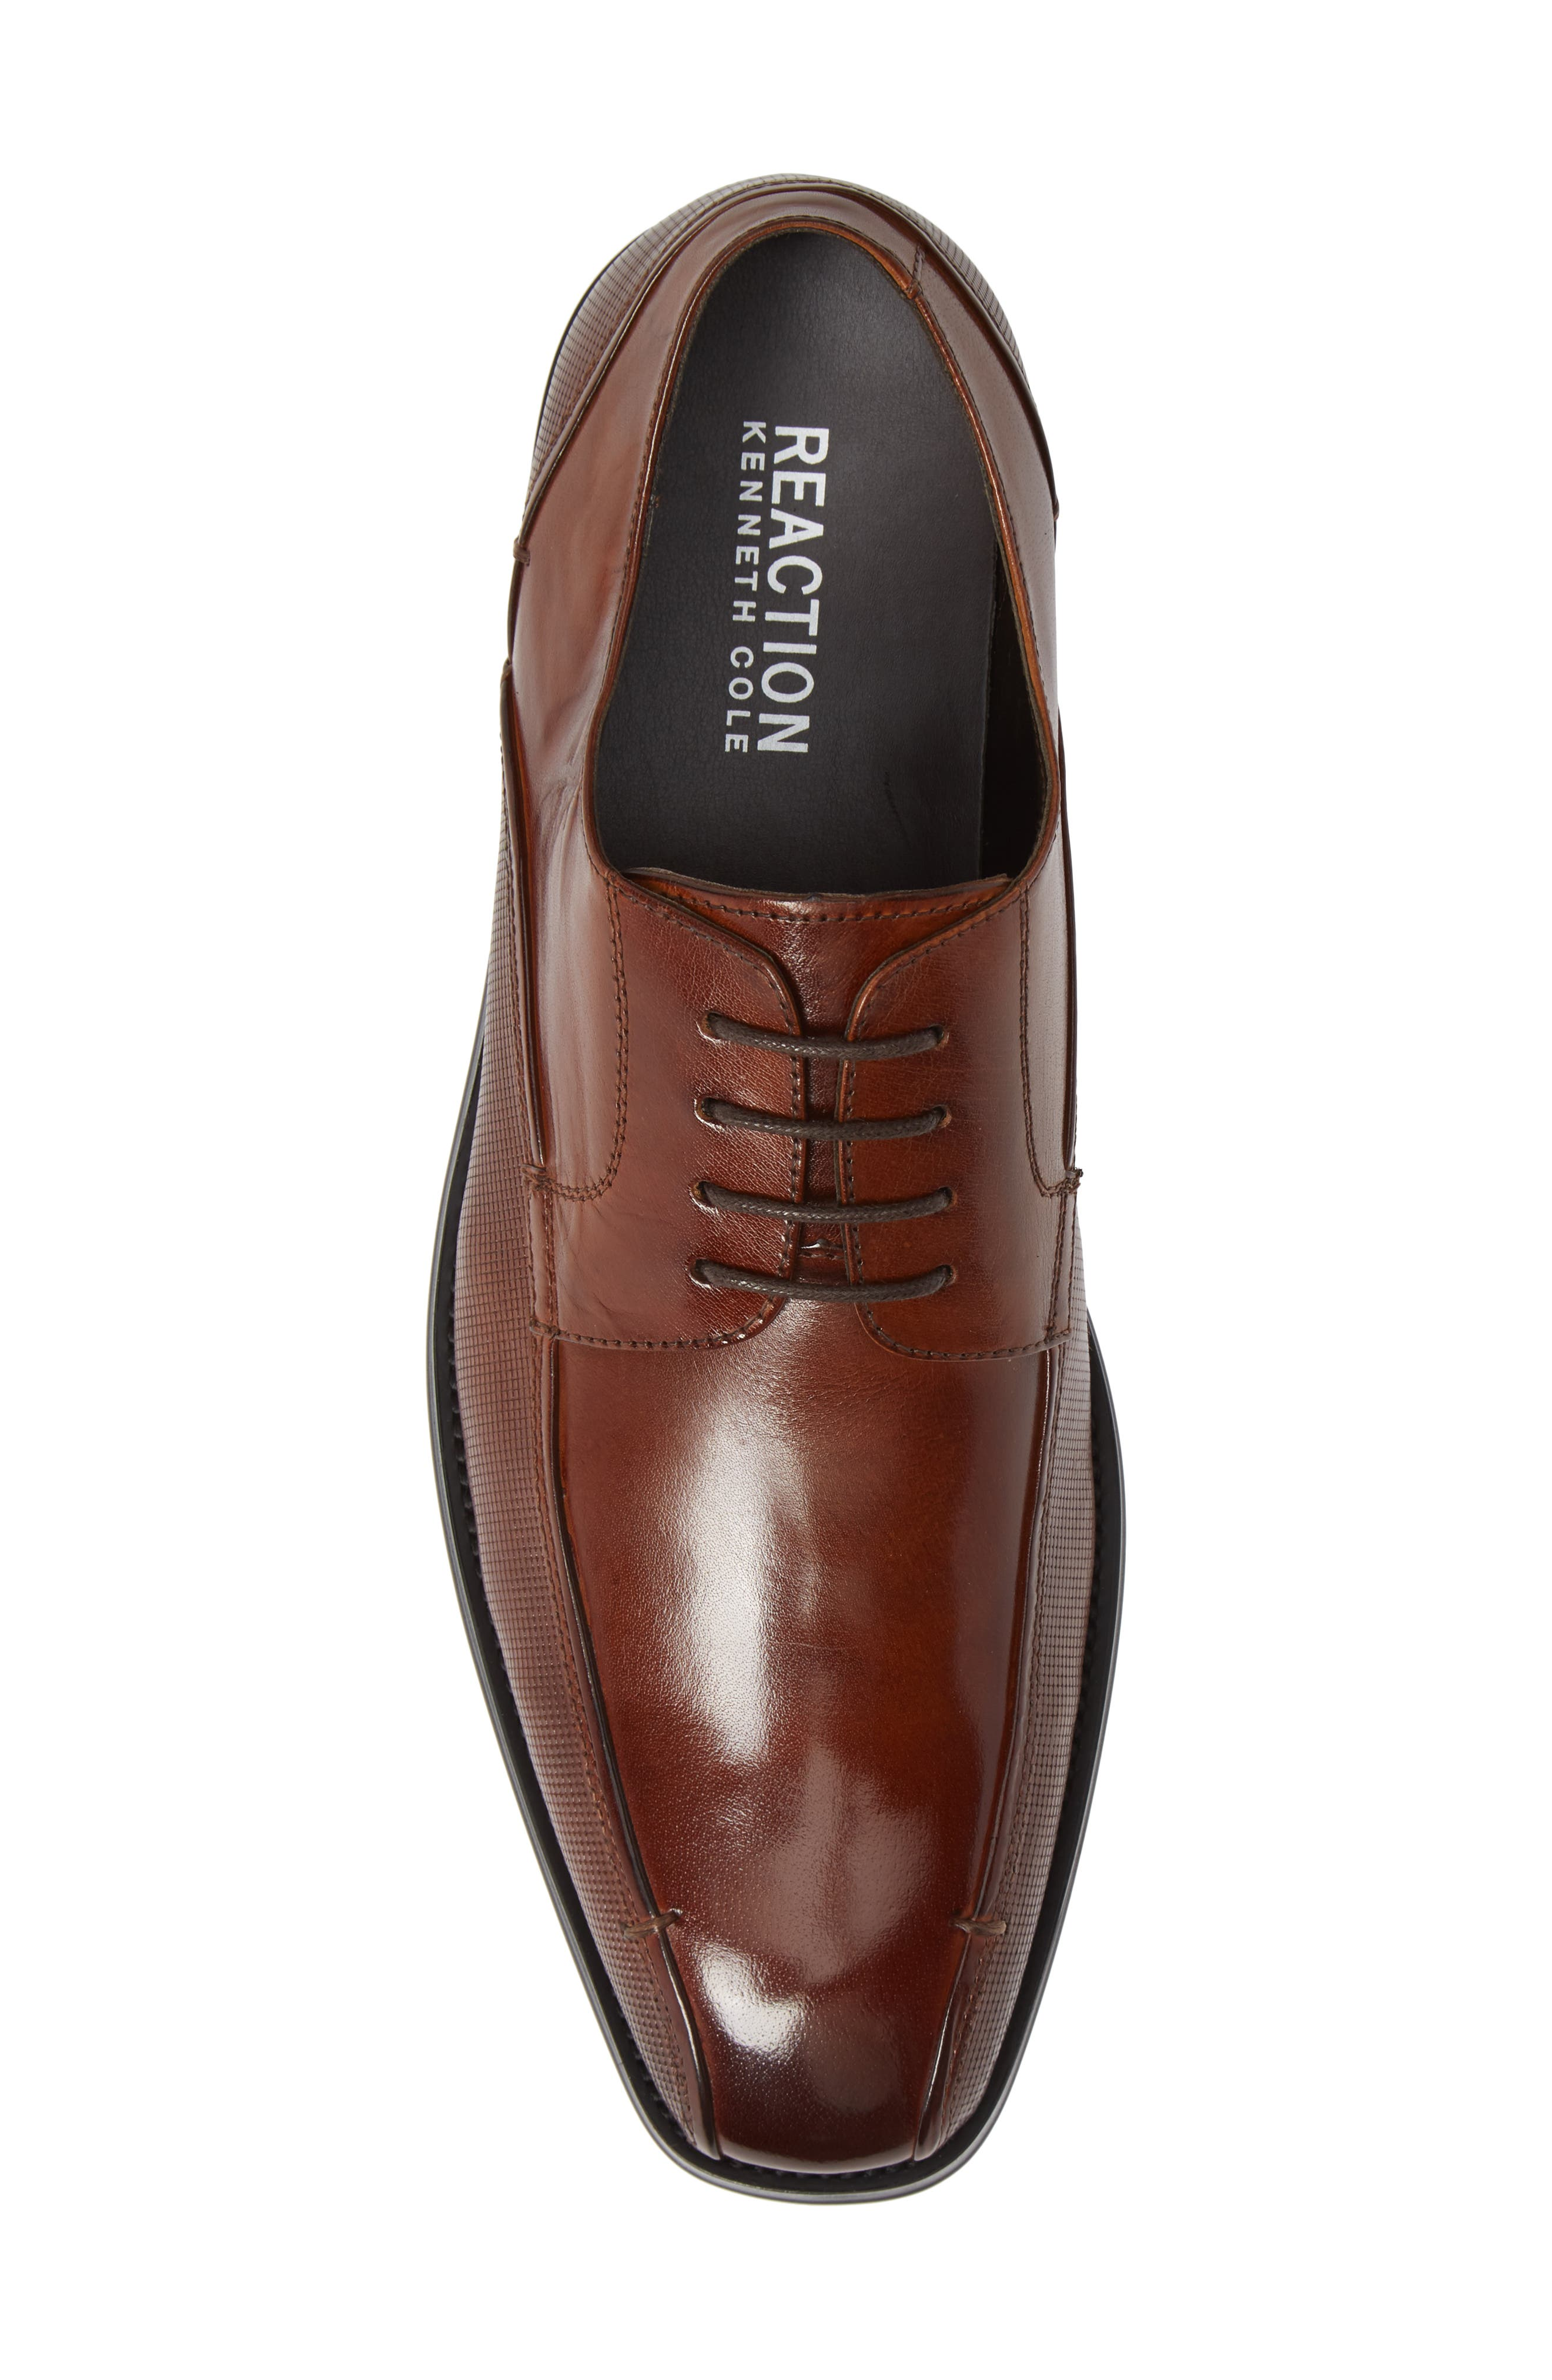 REACTION KENNETH COLE, Witter Textured Bike Toe Derby, Alternate thumbnail 5, color, COGNAC LEATHER